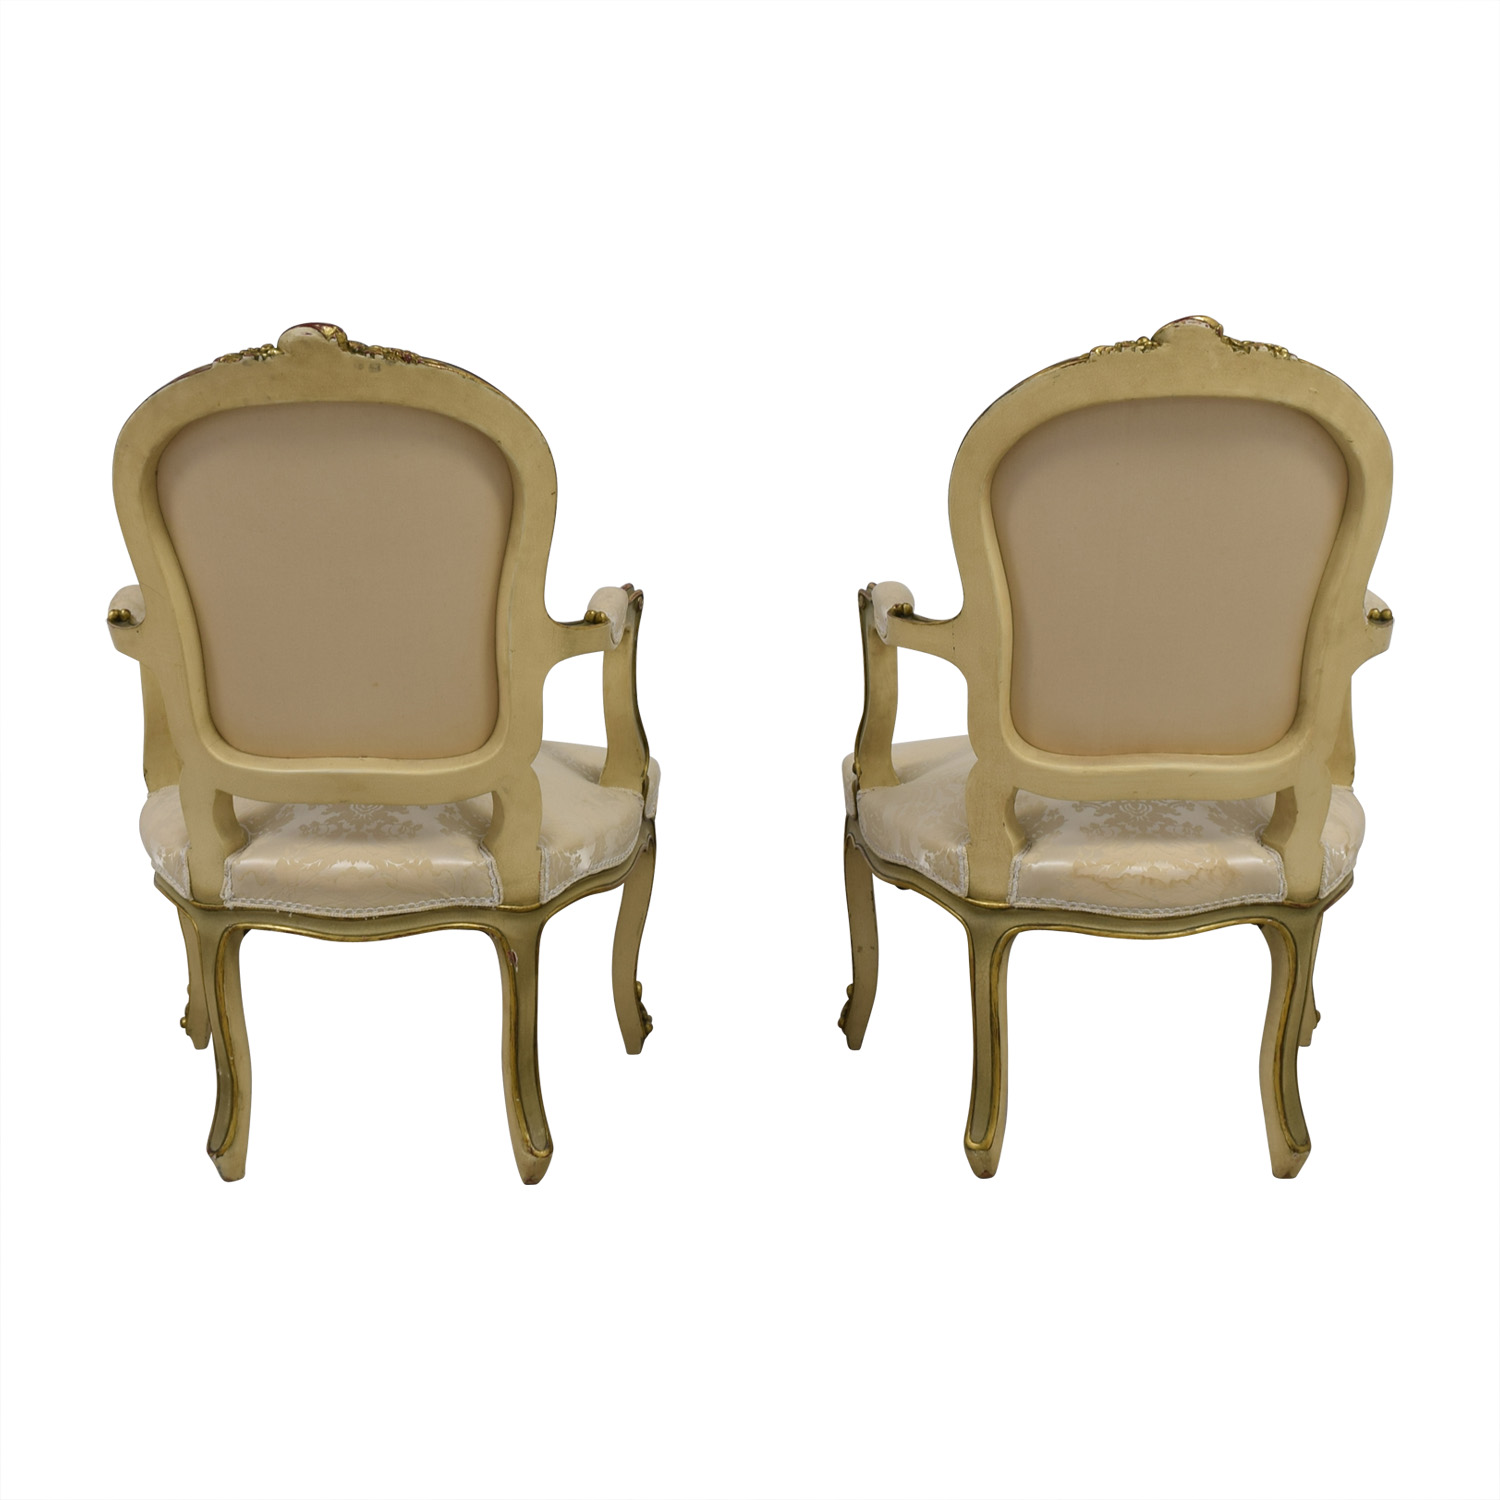 Antique White Jacquard Upholstered Gold Arm Chairs for sale